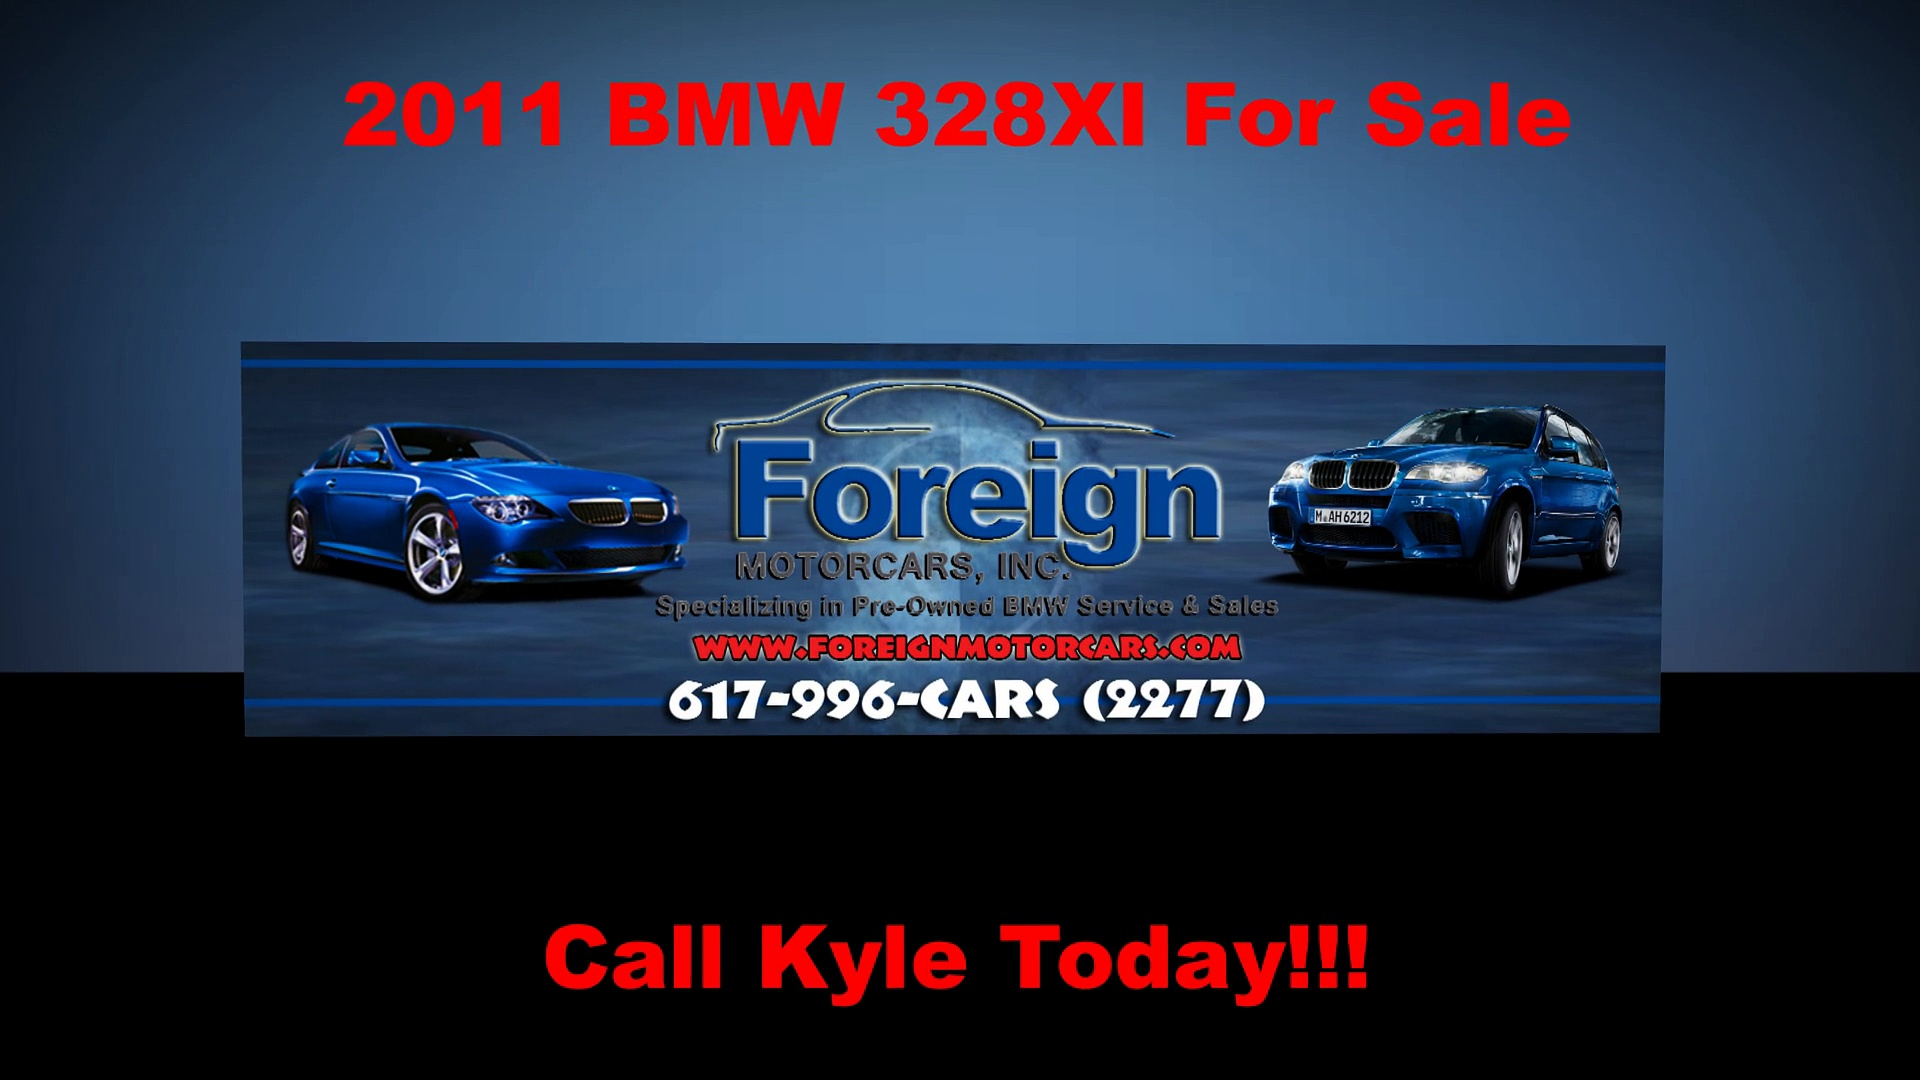 2011 BMW 328XI, For Sale, Foreign Motorcars Inc, Quincy MA, BMW Service, BMW Repair, BMW Sales